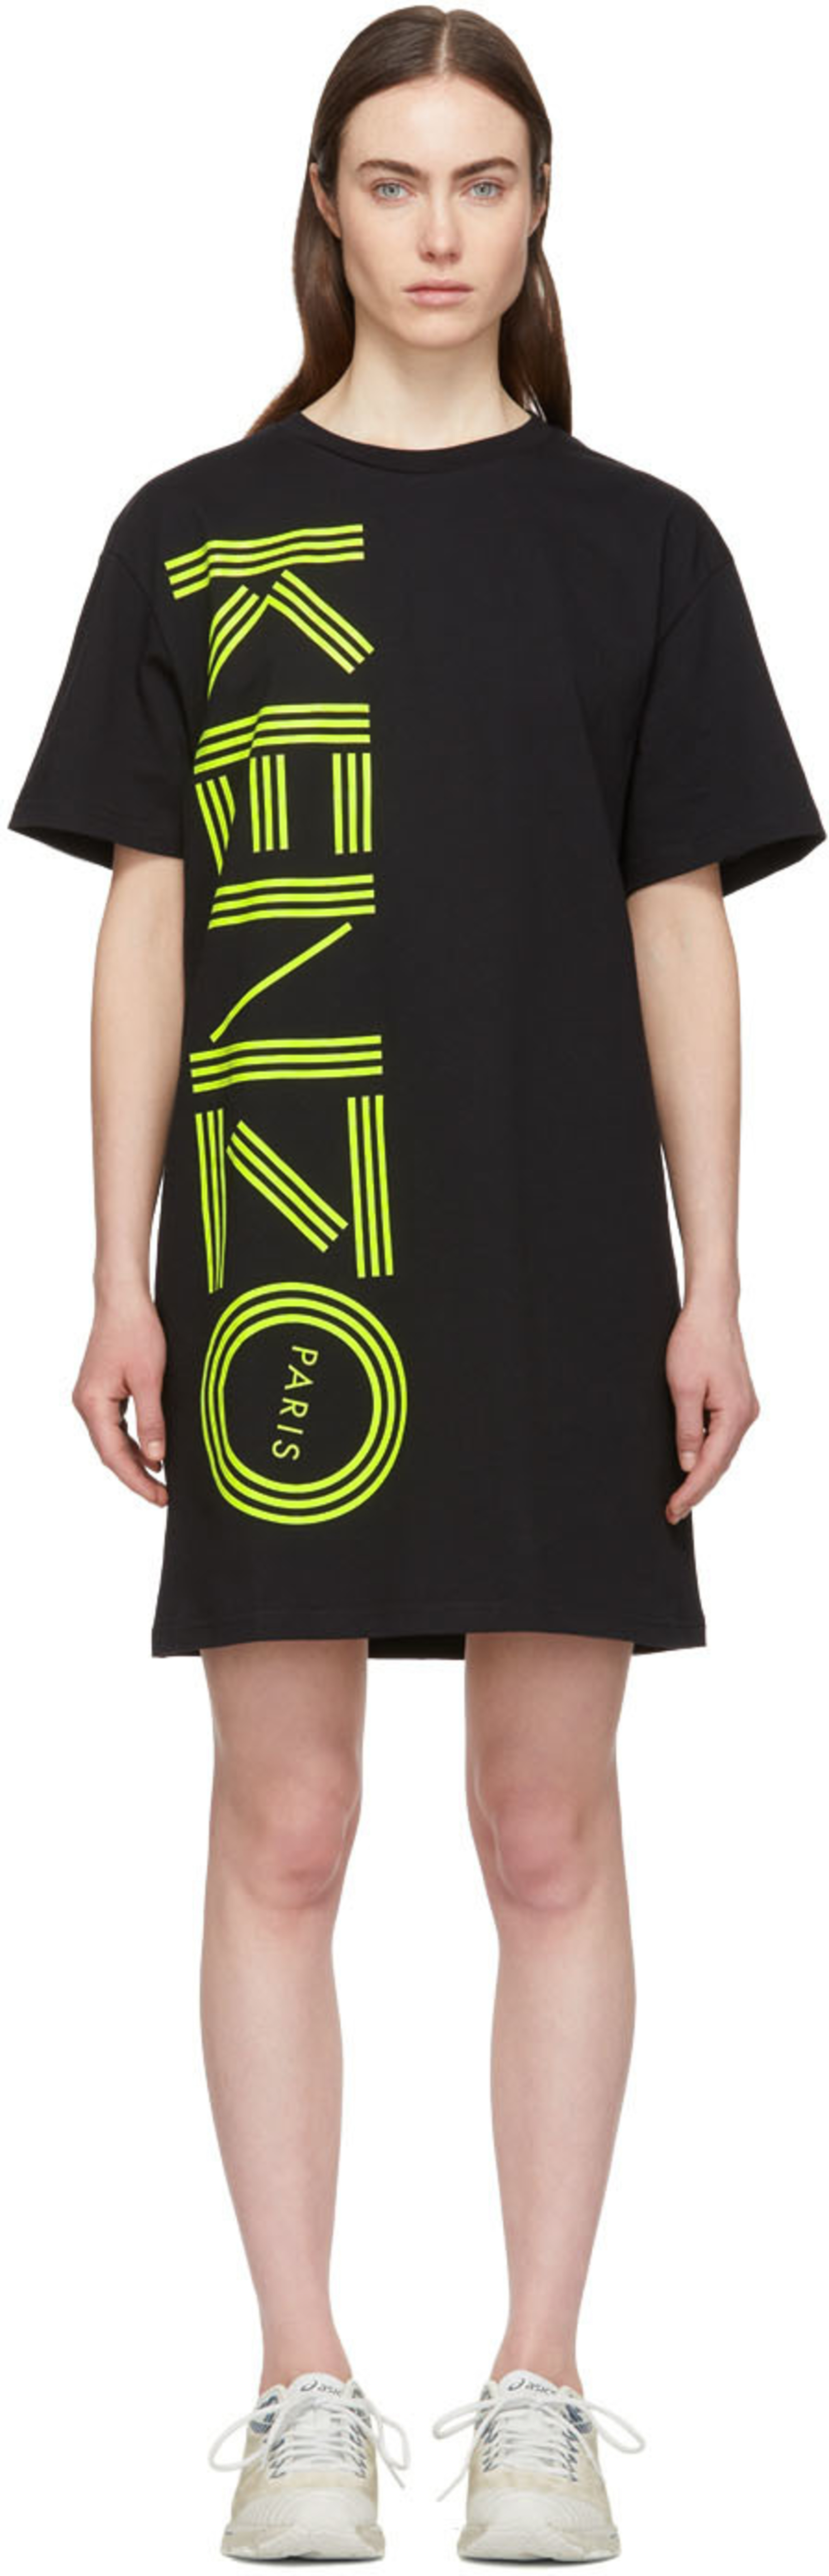 281c842af Kenzo for Women SS19 Collection | SSENSE Canada